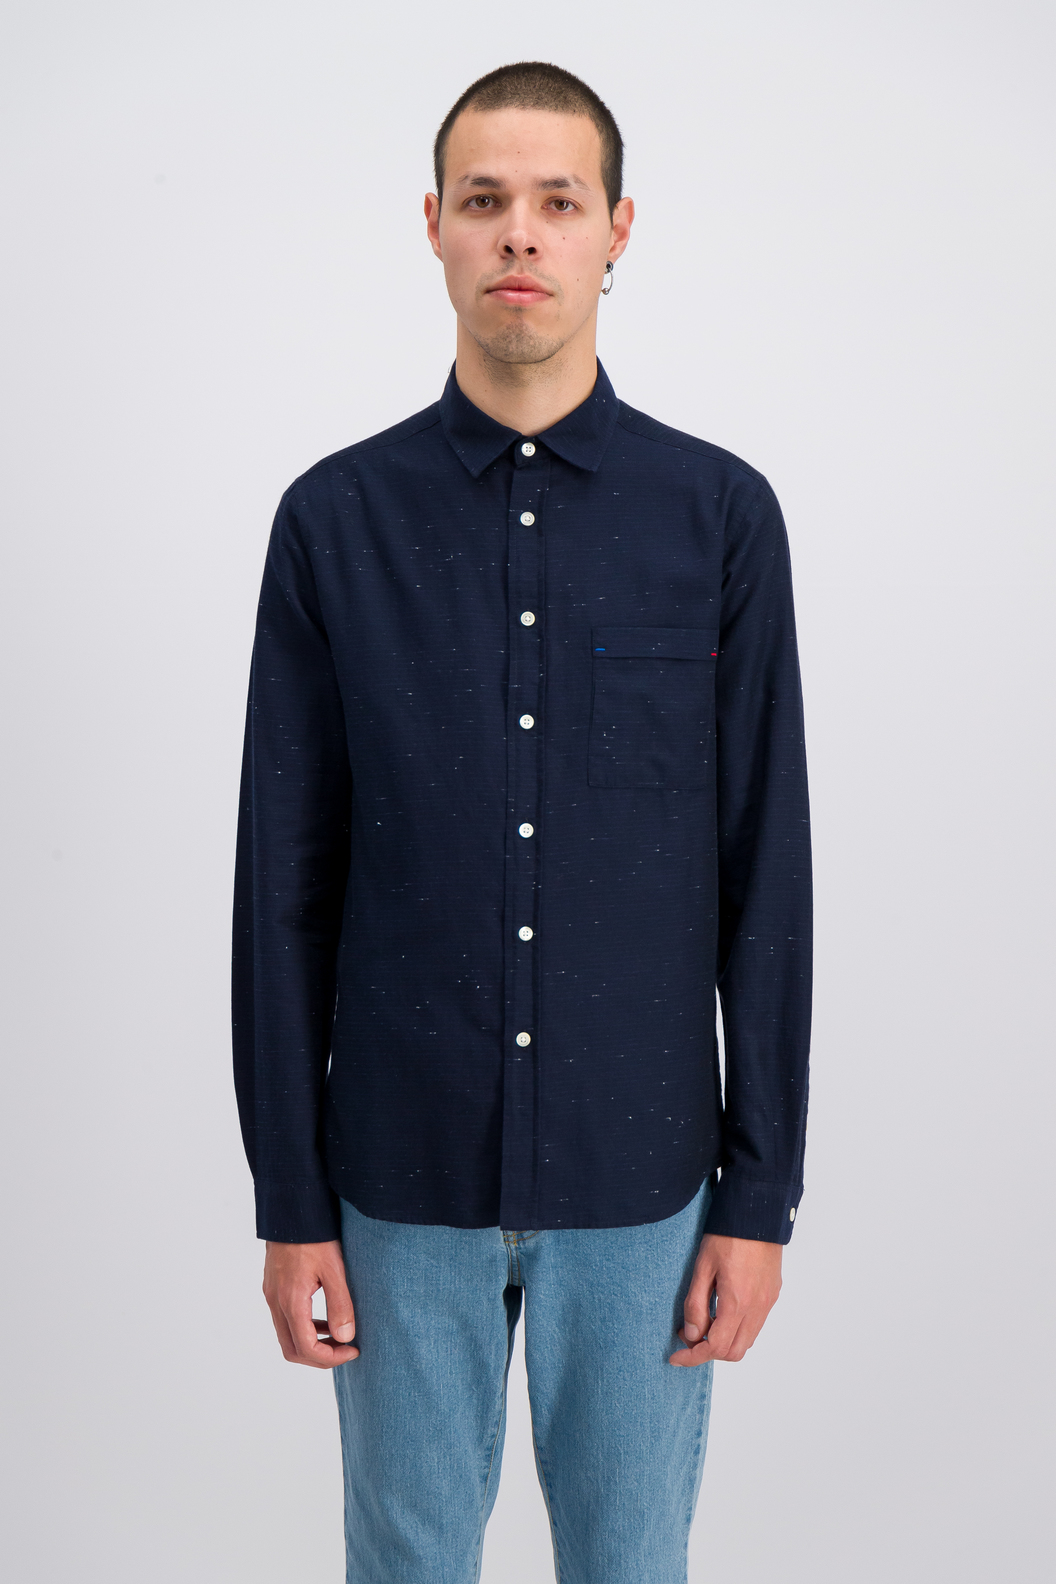 SHIRT ROSSEL19-NB - Navy bouton